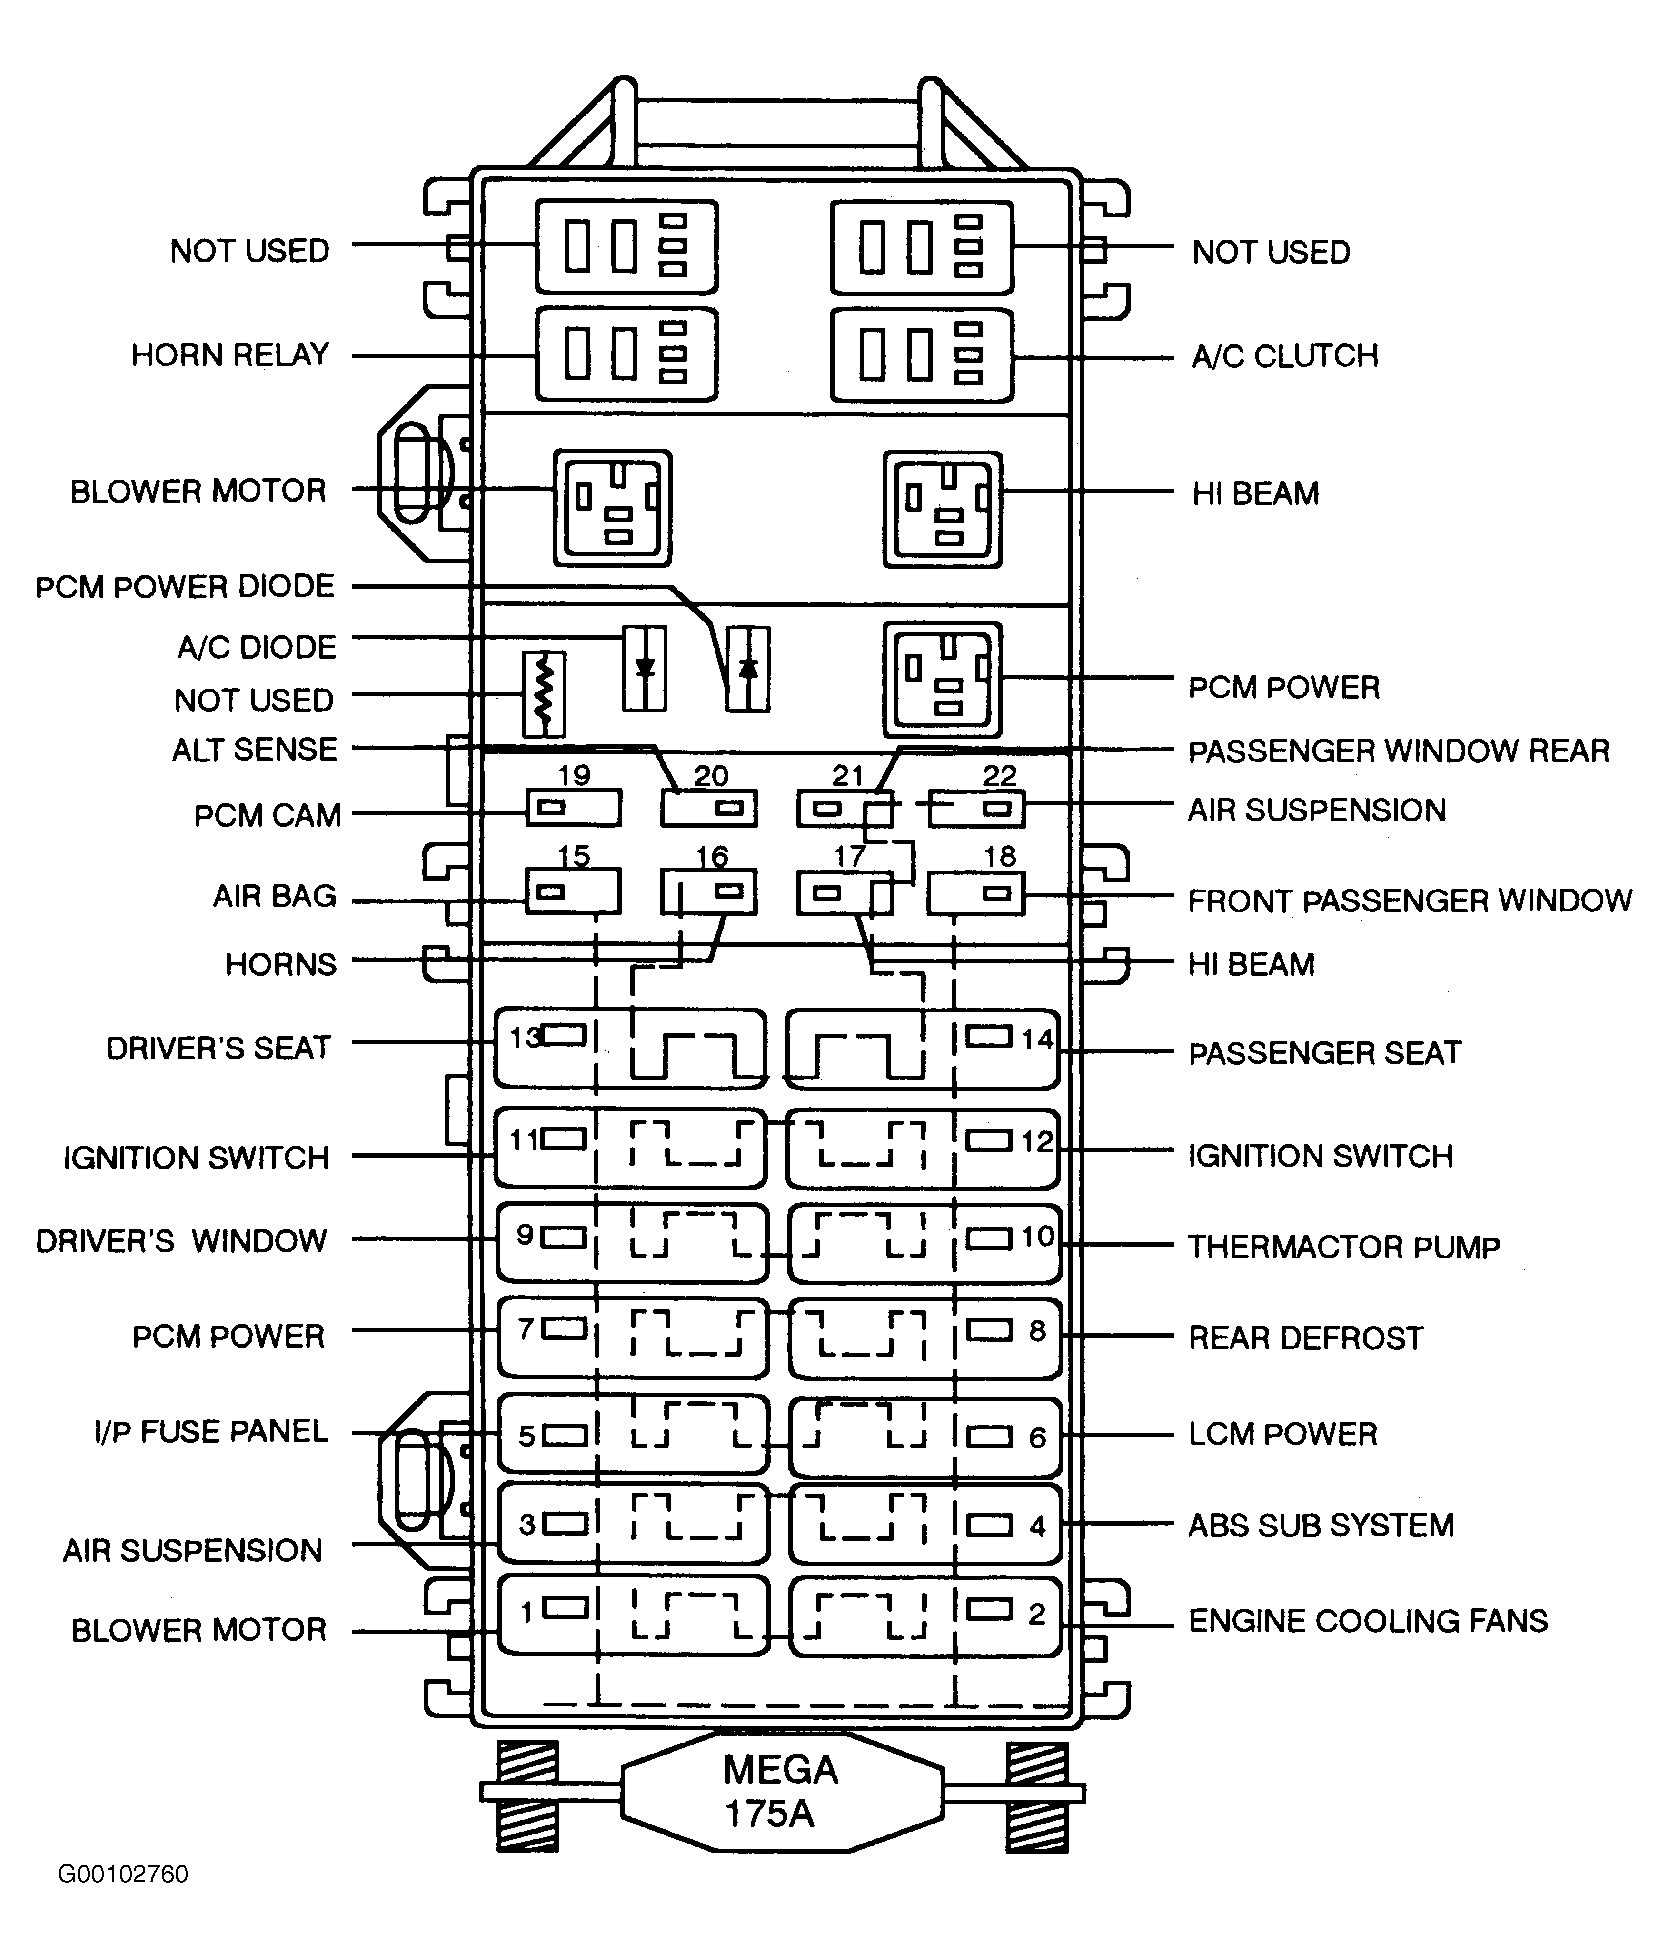 hight resolution of car fuse box diagram wiring diagram 1993 lincoln town car fuse box diagram